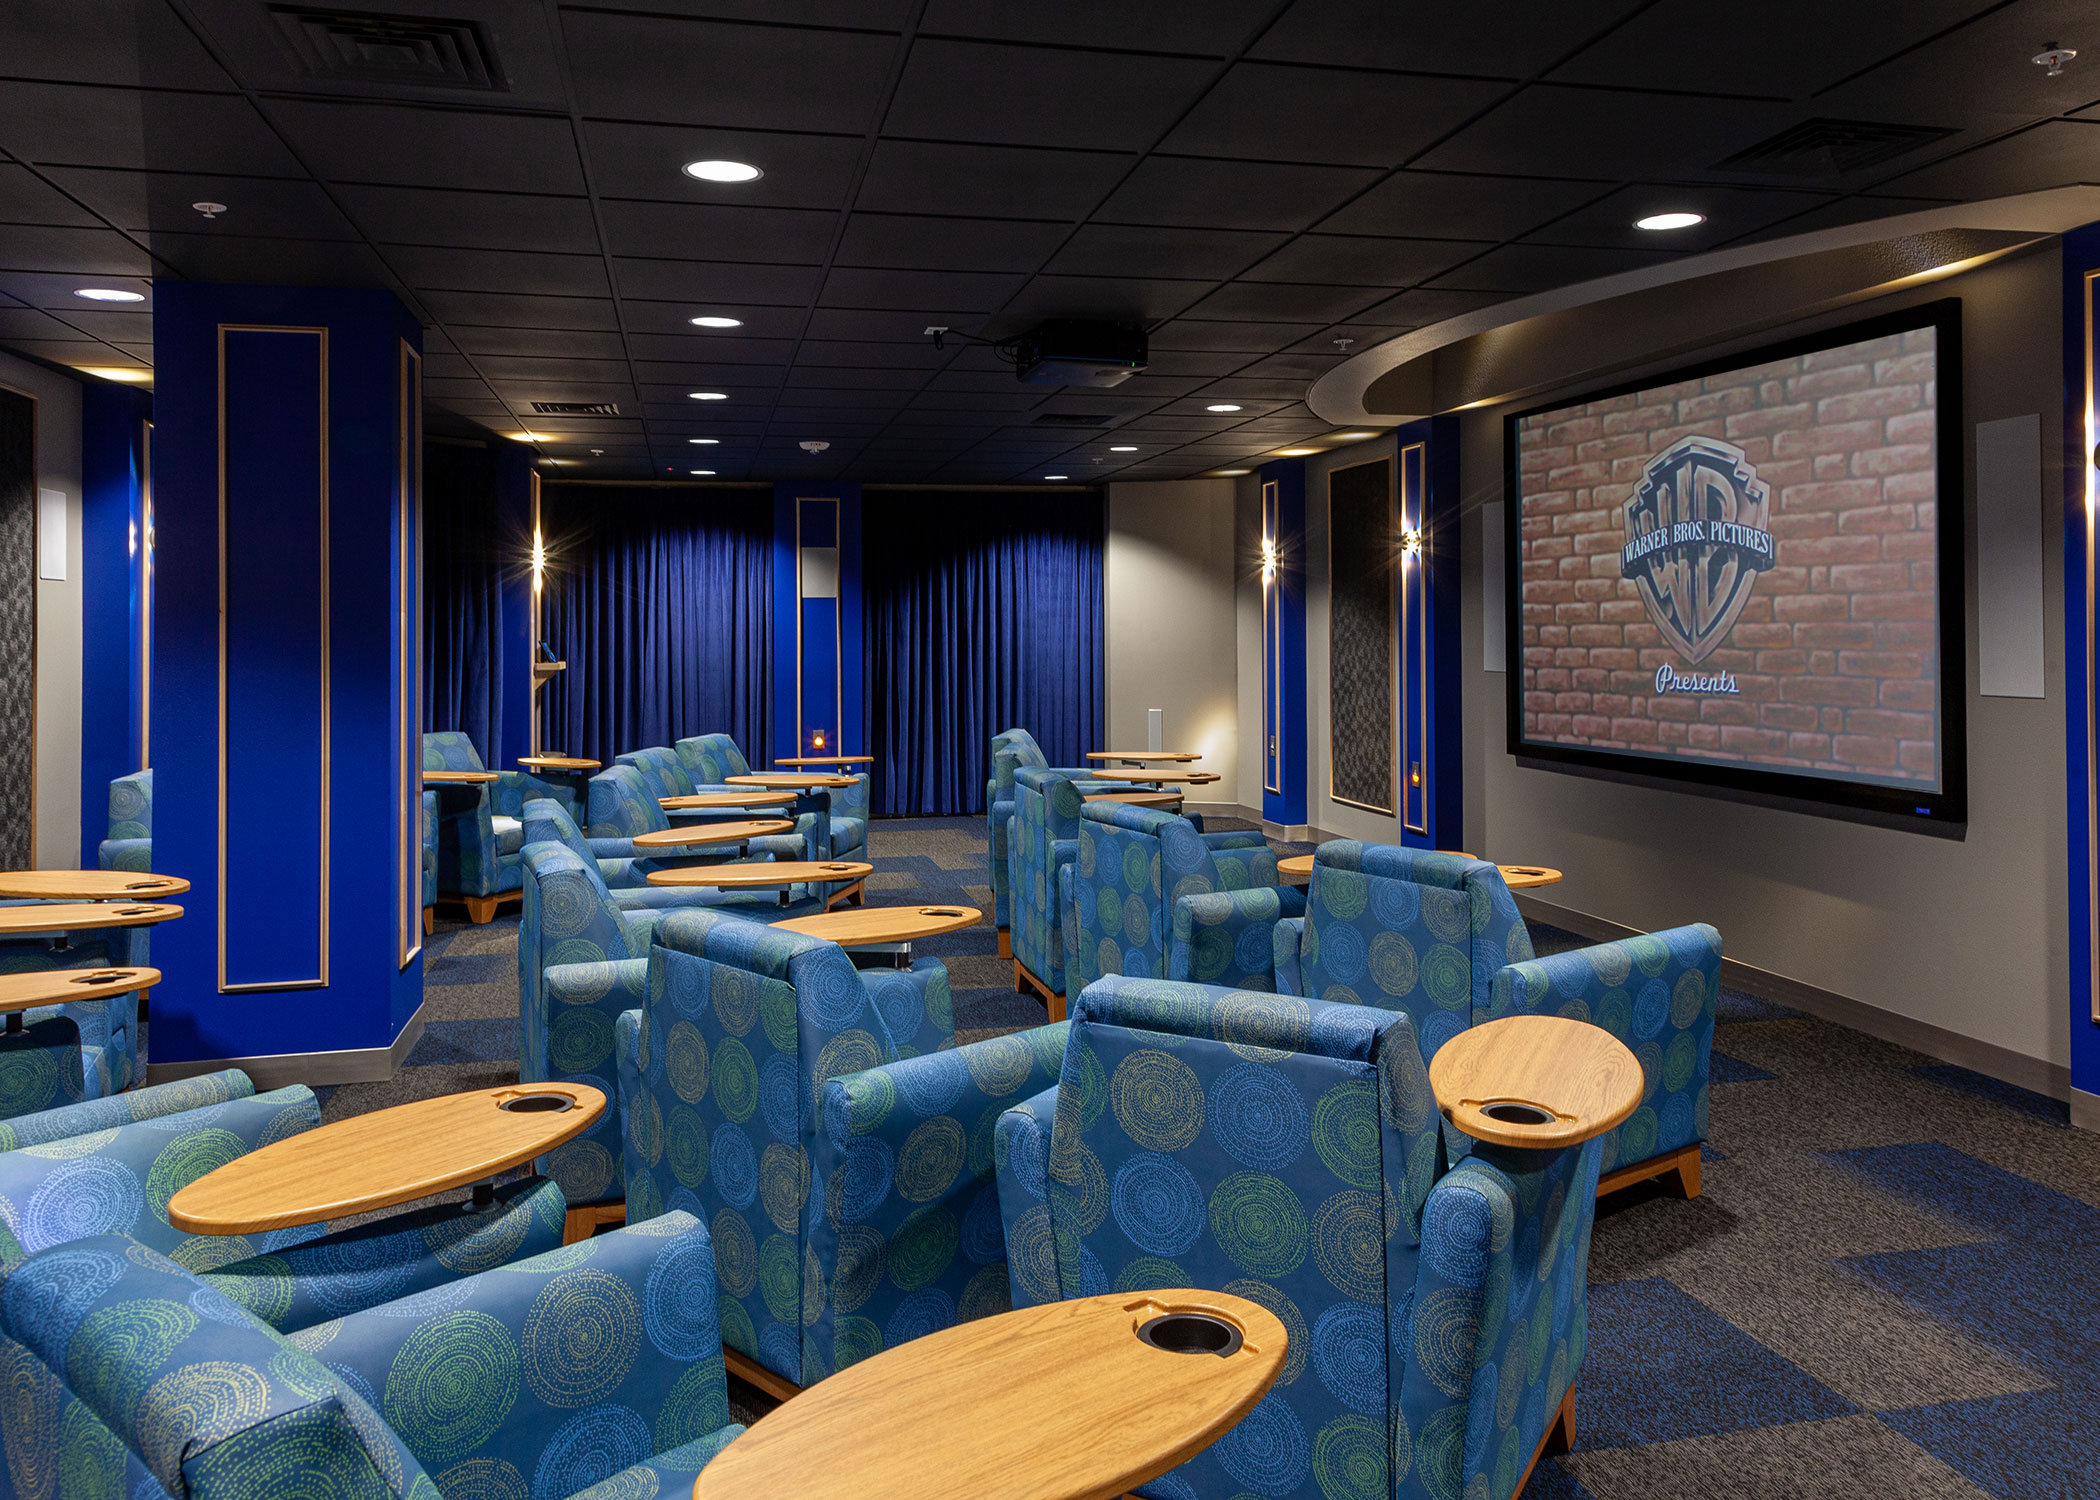 Inside of Warner Movie Theater with blue seat, blue curtains, soft lighting and a Warner Brothers Movie on screen